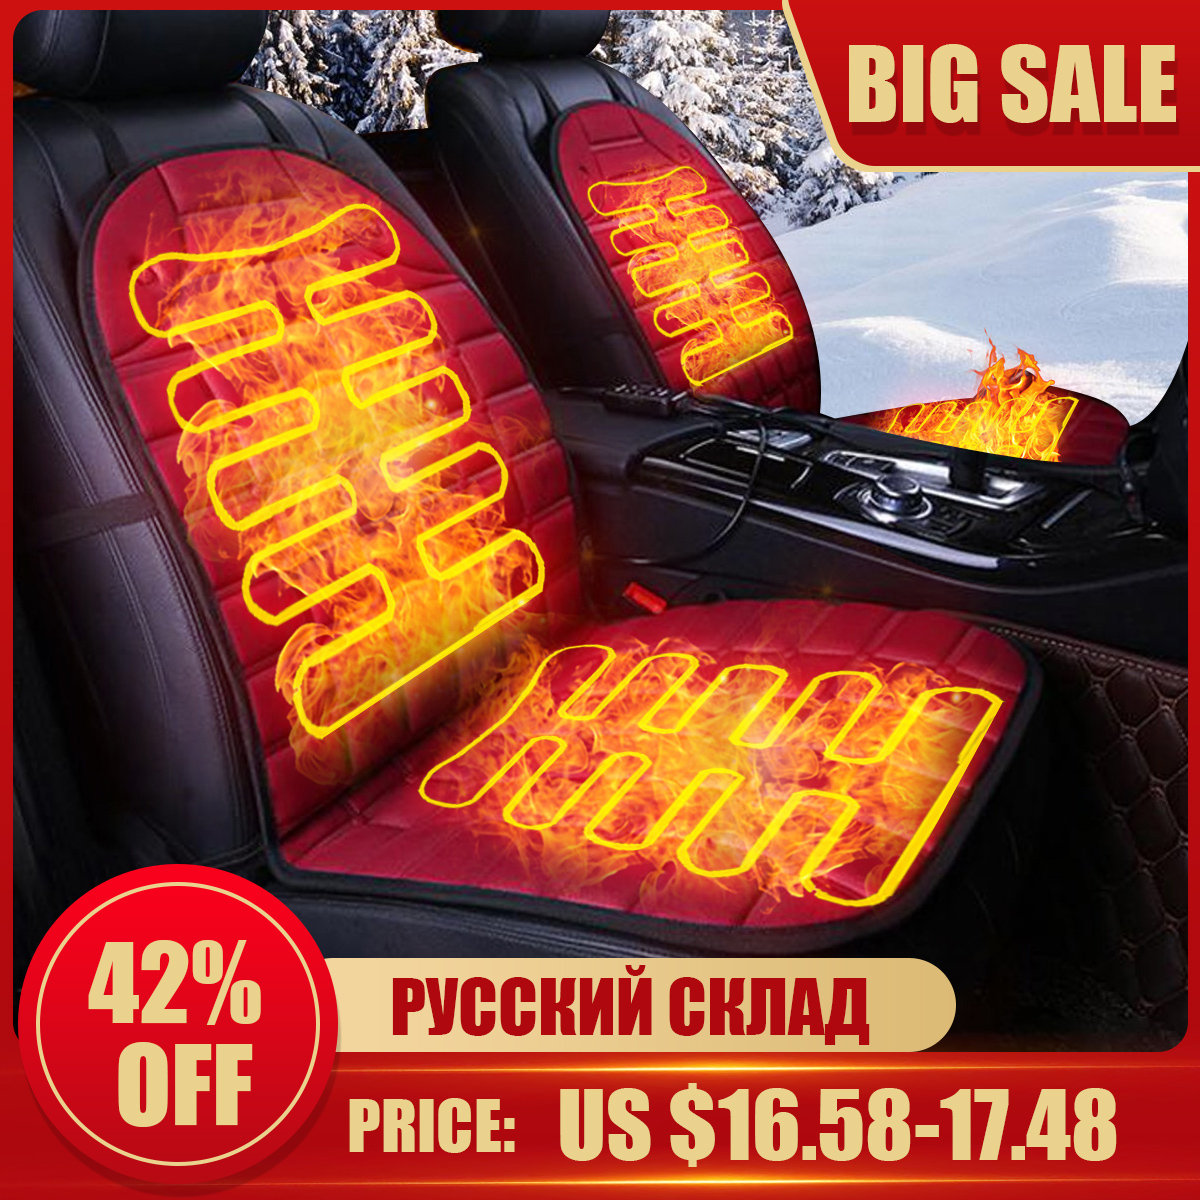 2Pcs In 1 Fast Heated & Adjustable Black/Grey/Blue/Red Car Electric Heated Seat Car Styling Winter Pad Cushions Auto Covers title=